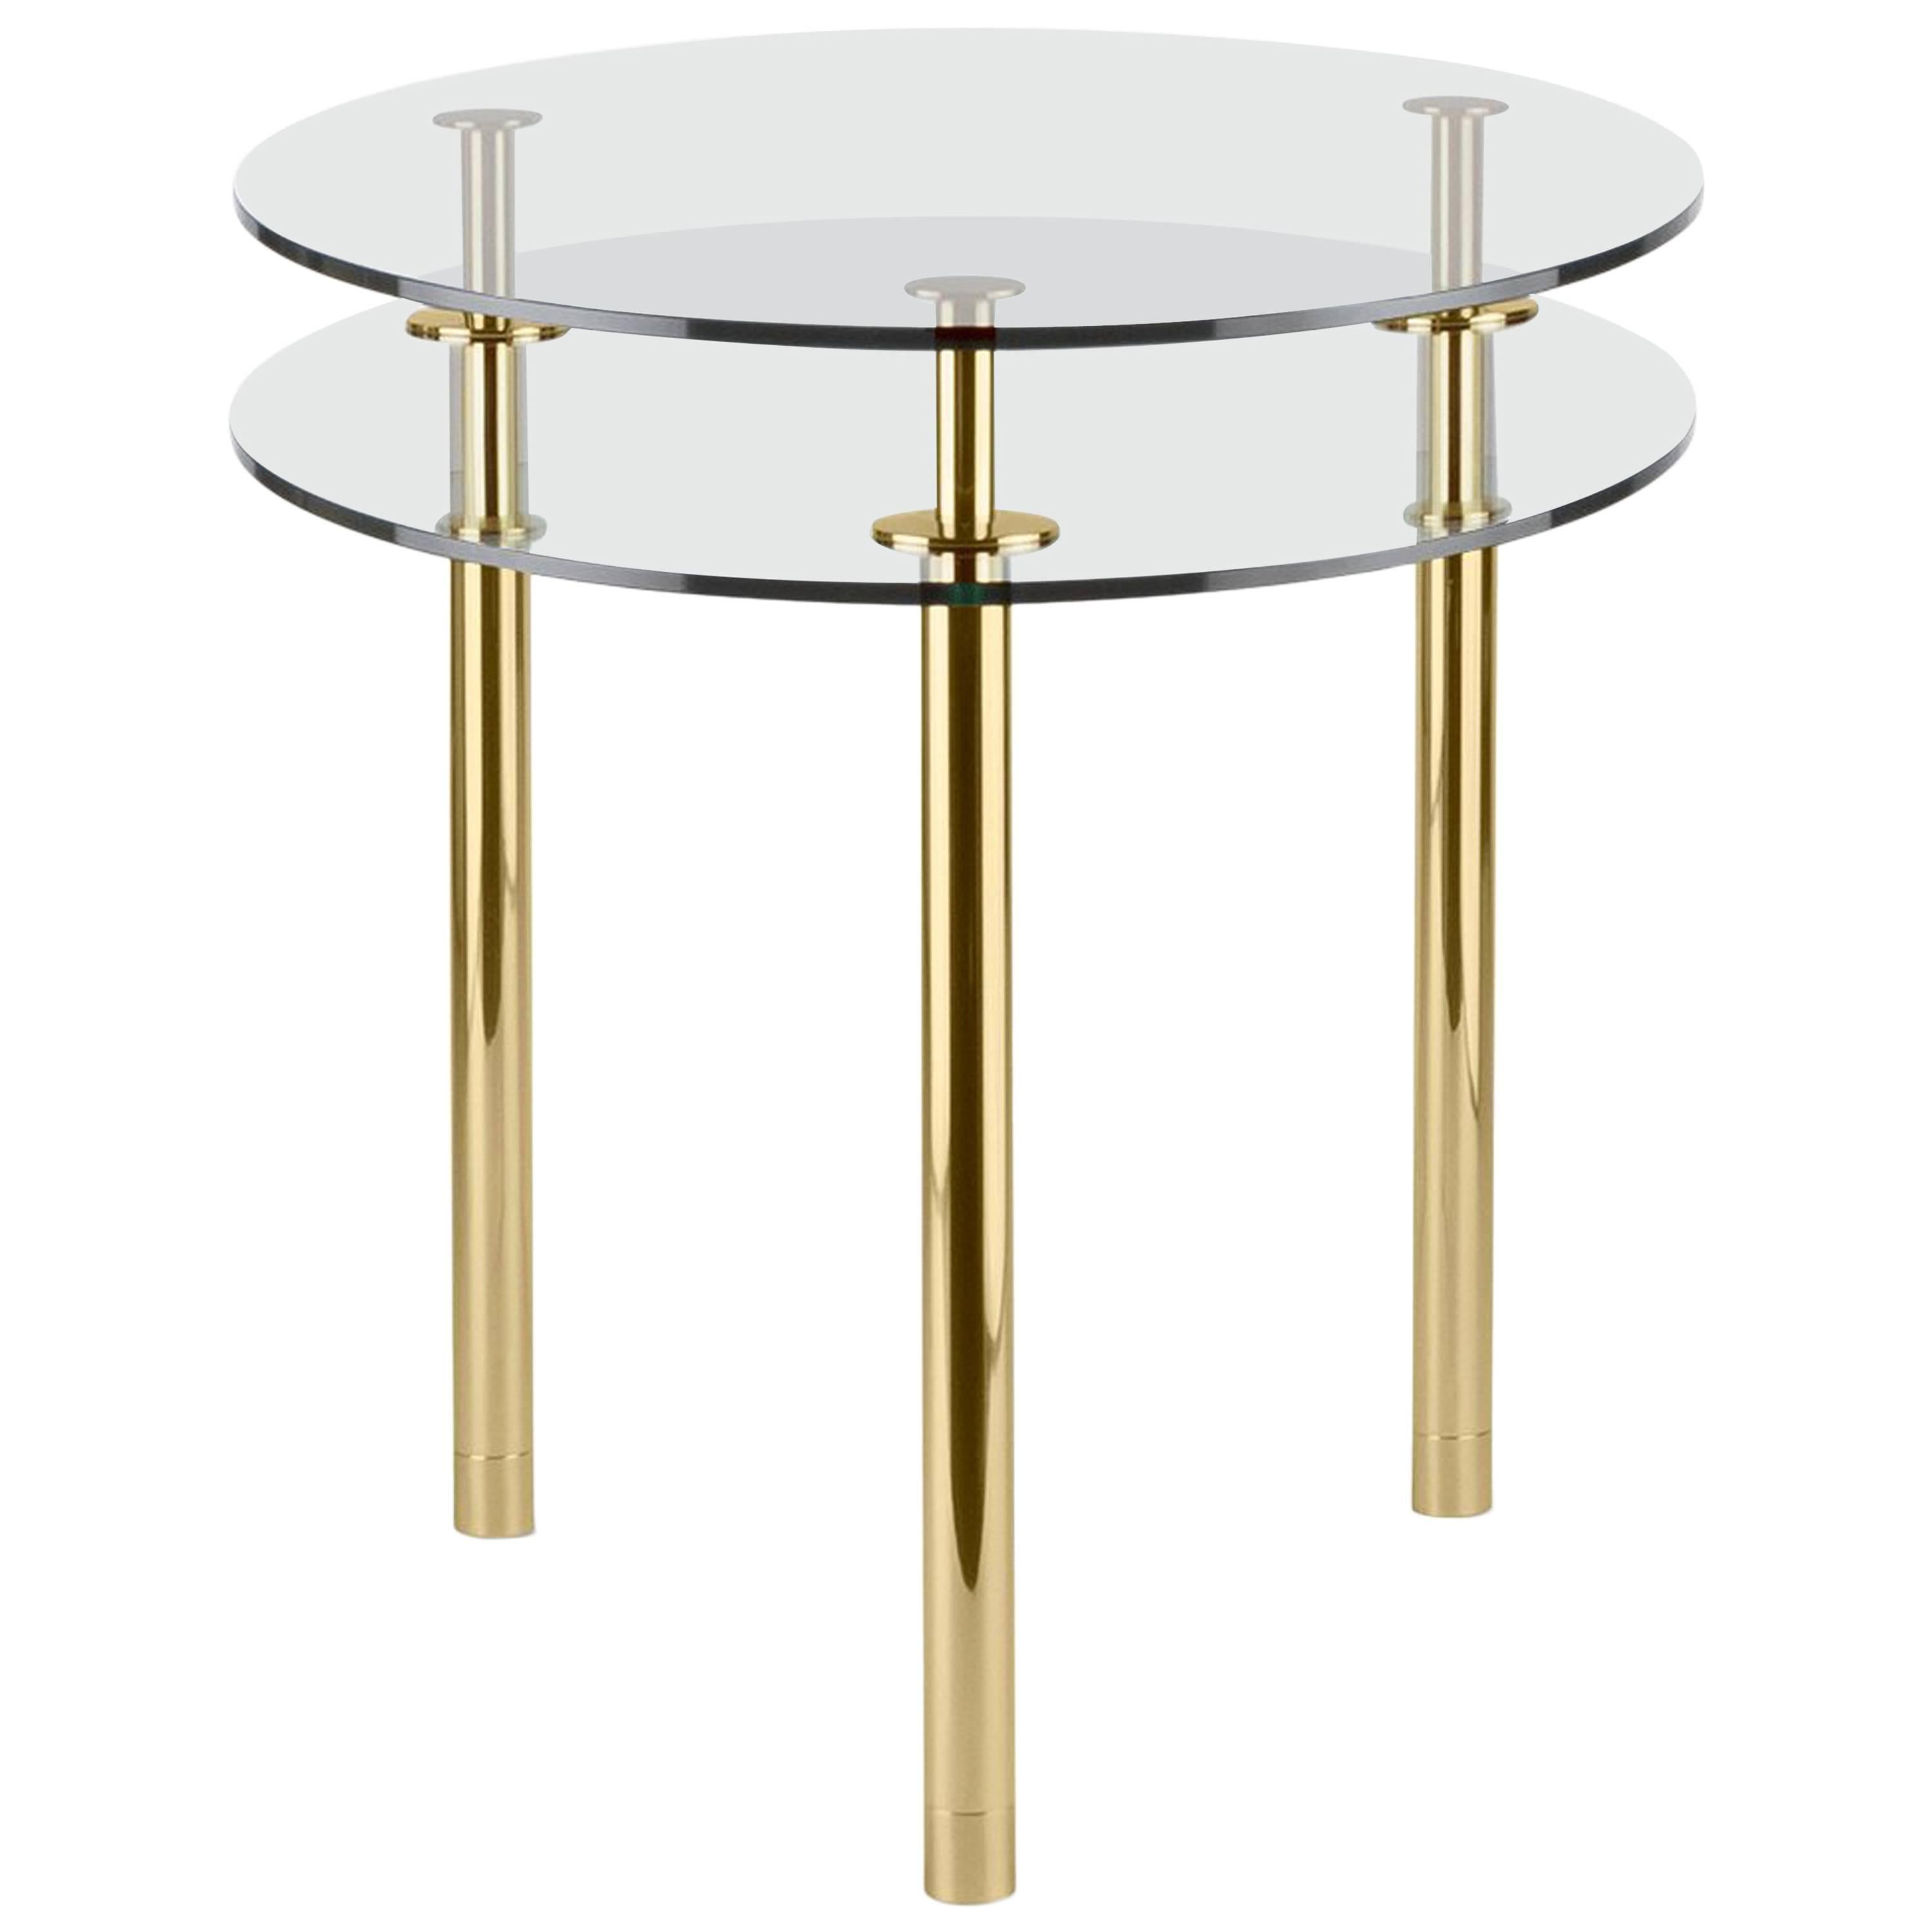 Ghidini 1961 Legs Small Round Table in Crystal and Polished Brass